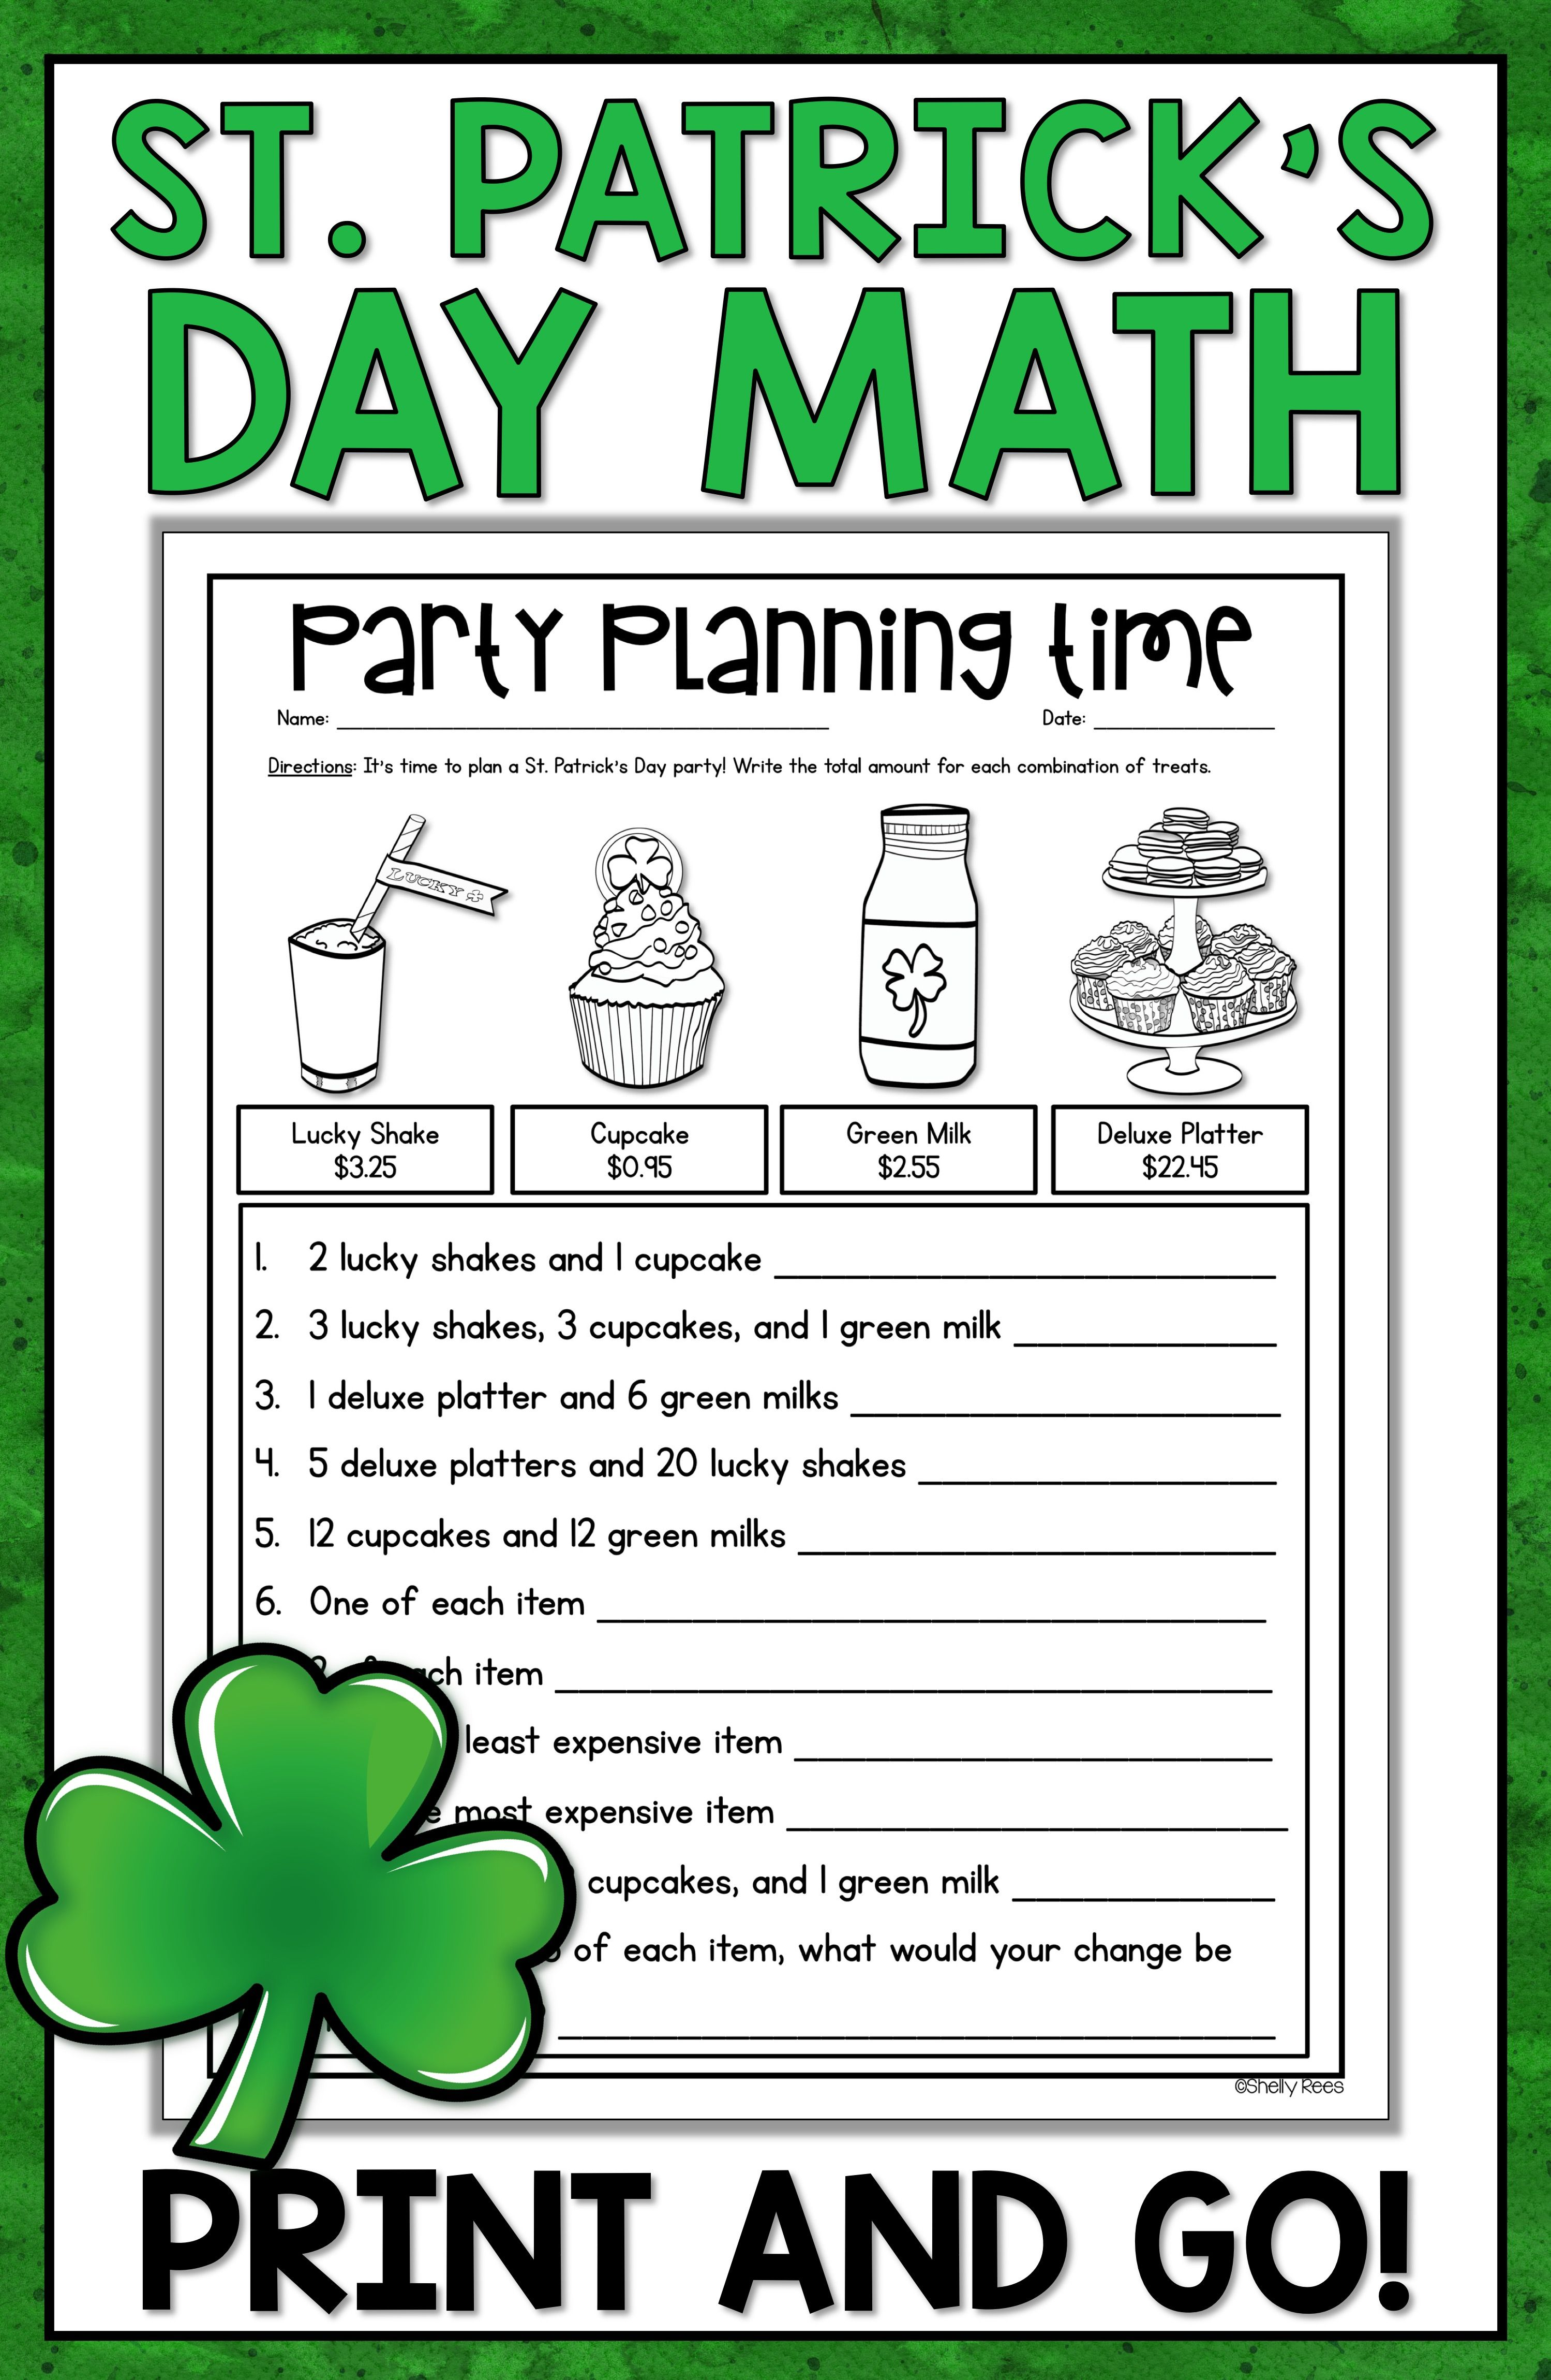 St Patrick S Day Worksheets For 1st Grade   Printable Worksheets and  Activities for Teachers [ 4599 x 2998 Pixel ]